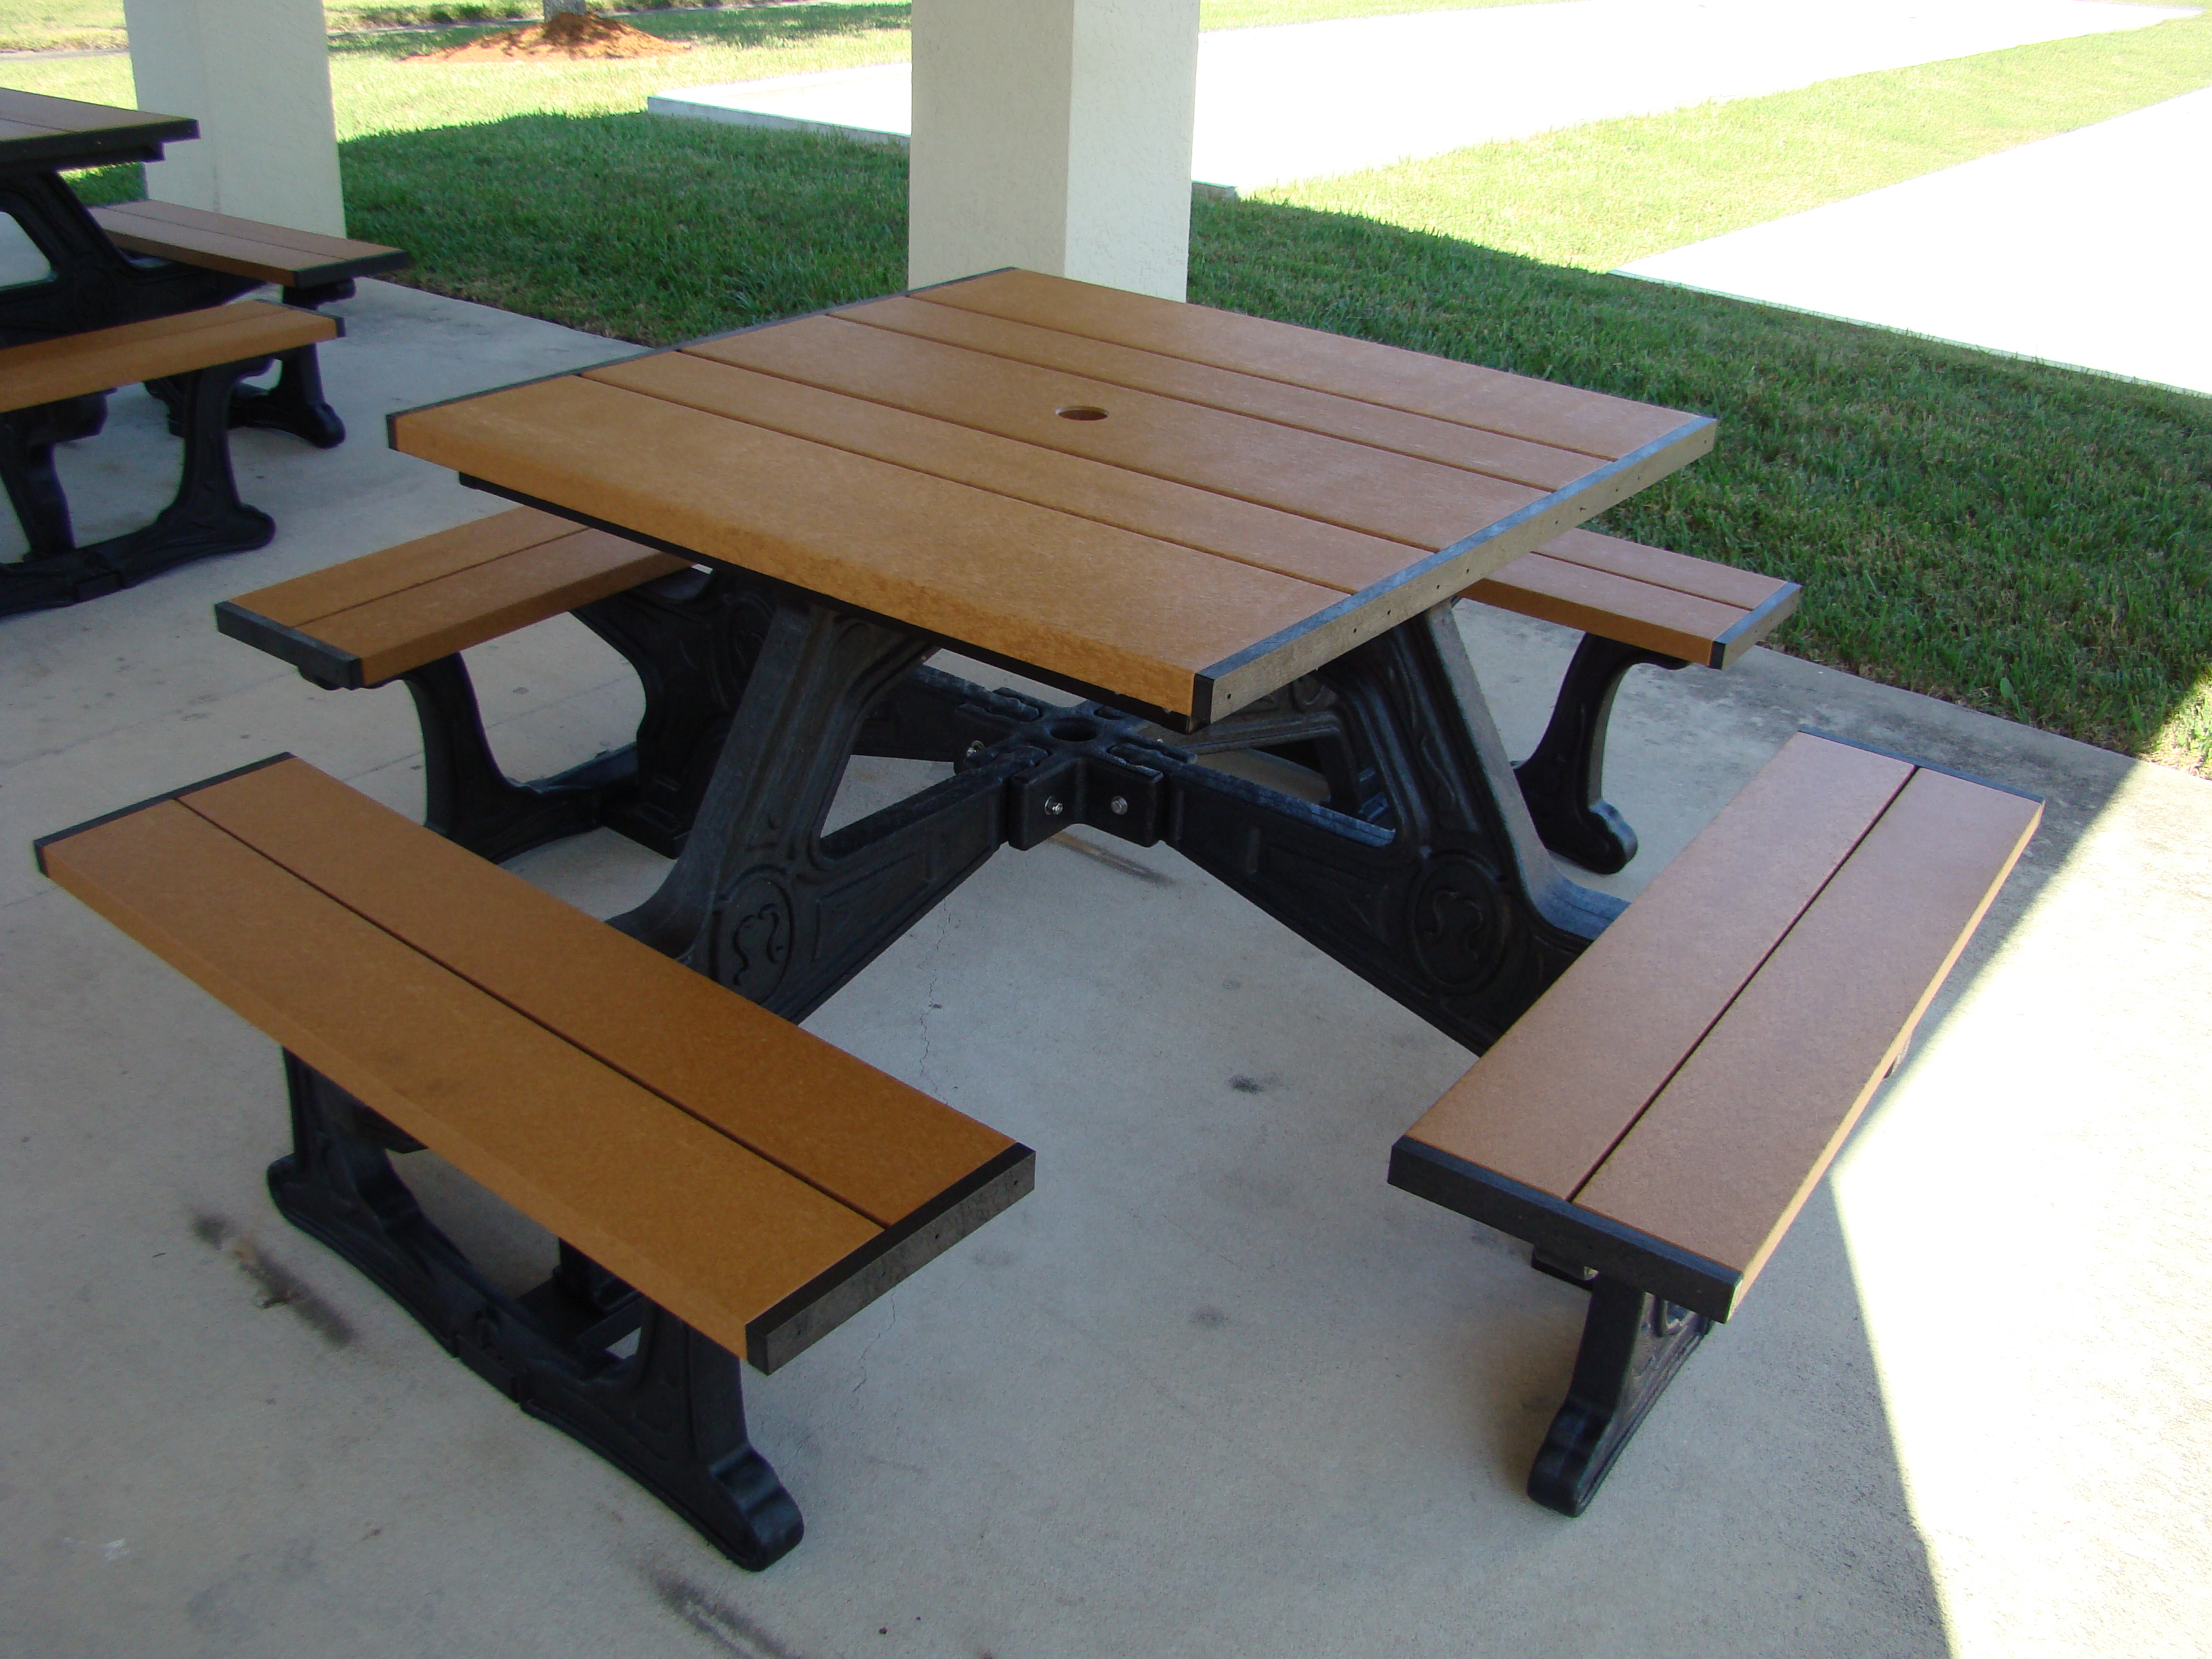 Town Square Picnic Table Outdoor Furniture At American